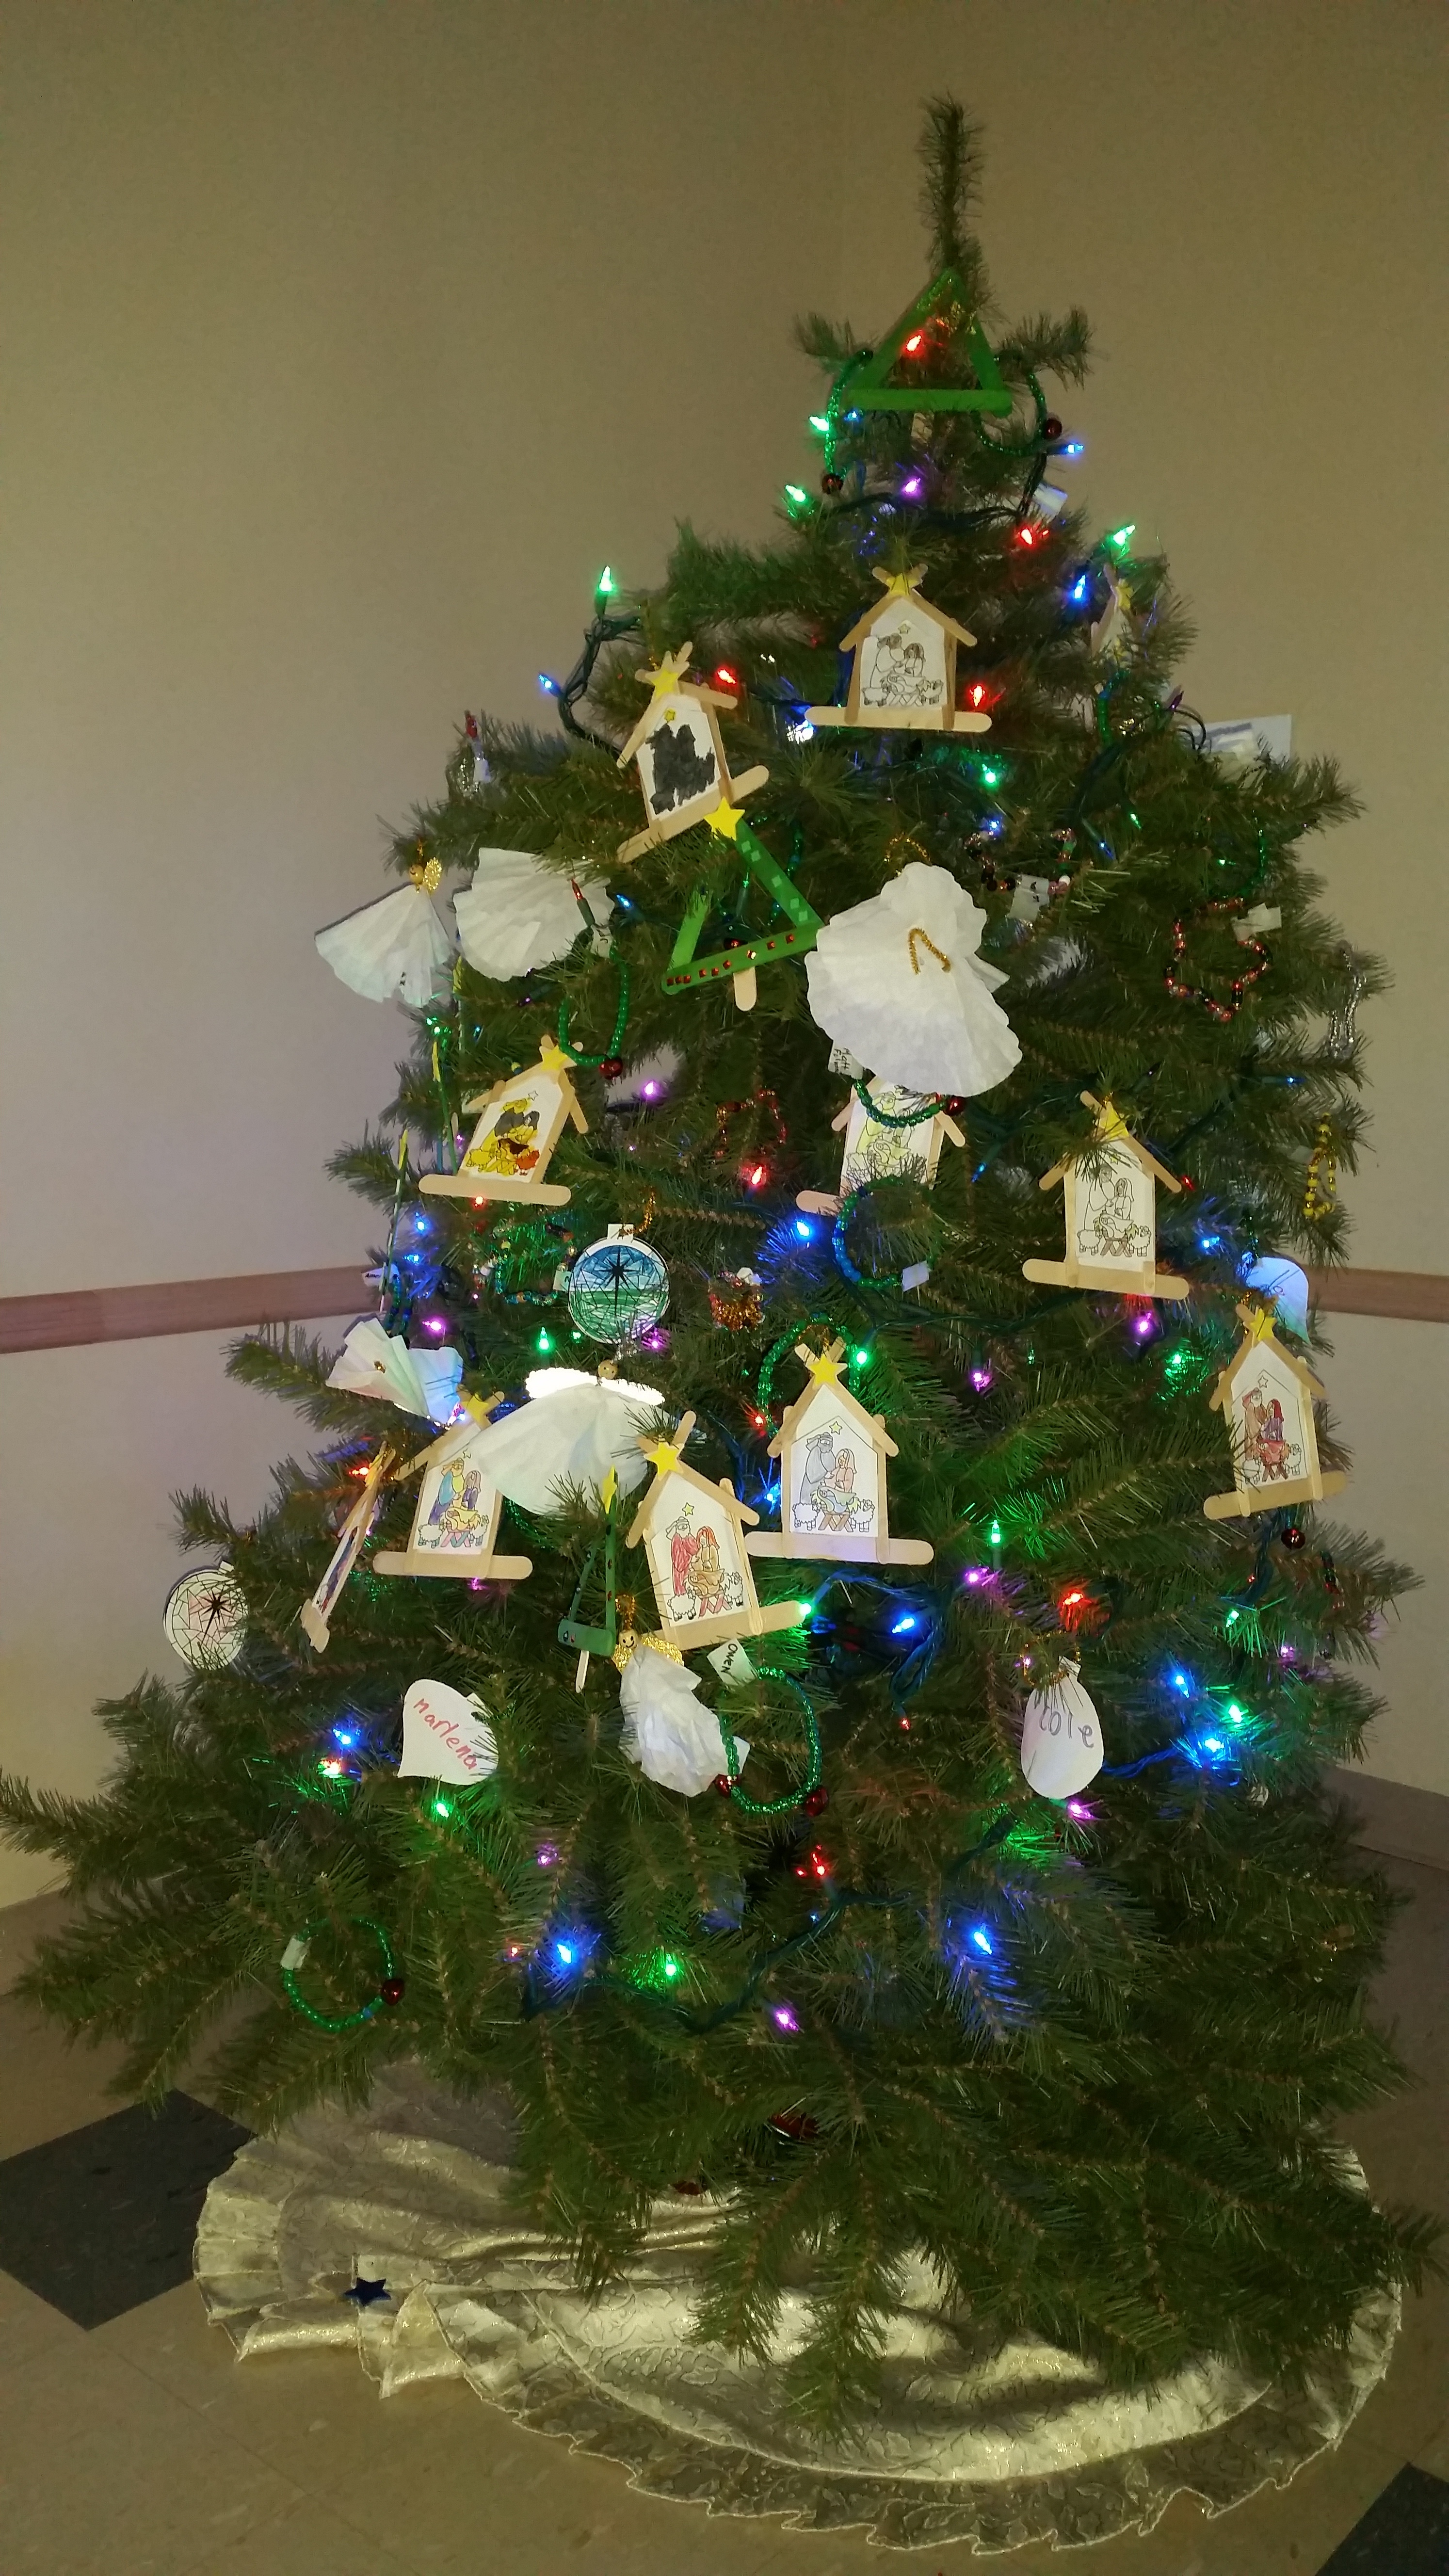 ChildrensTree2015